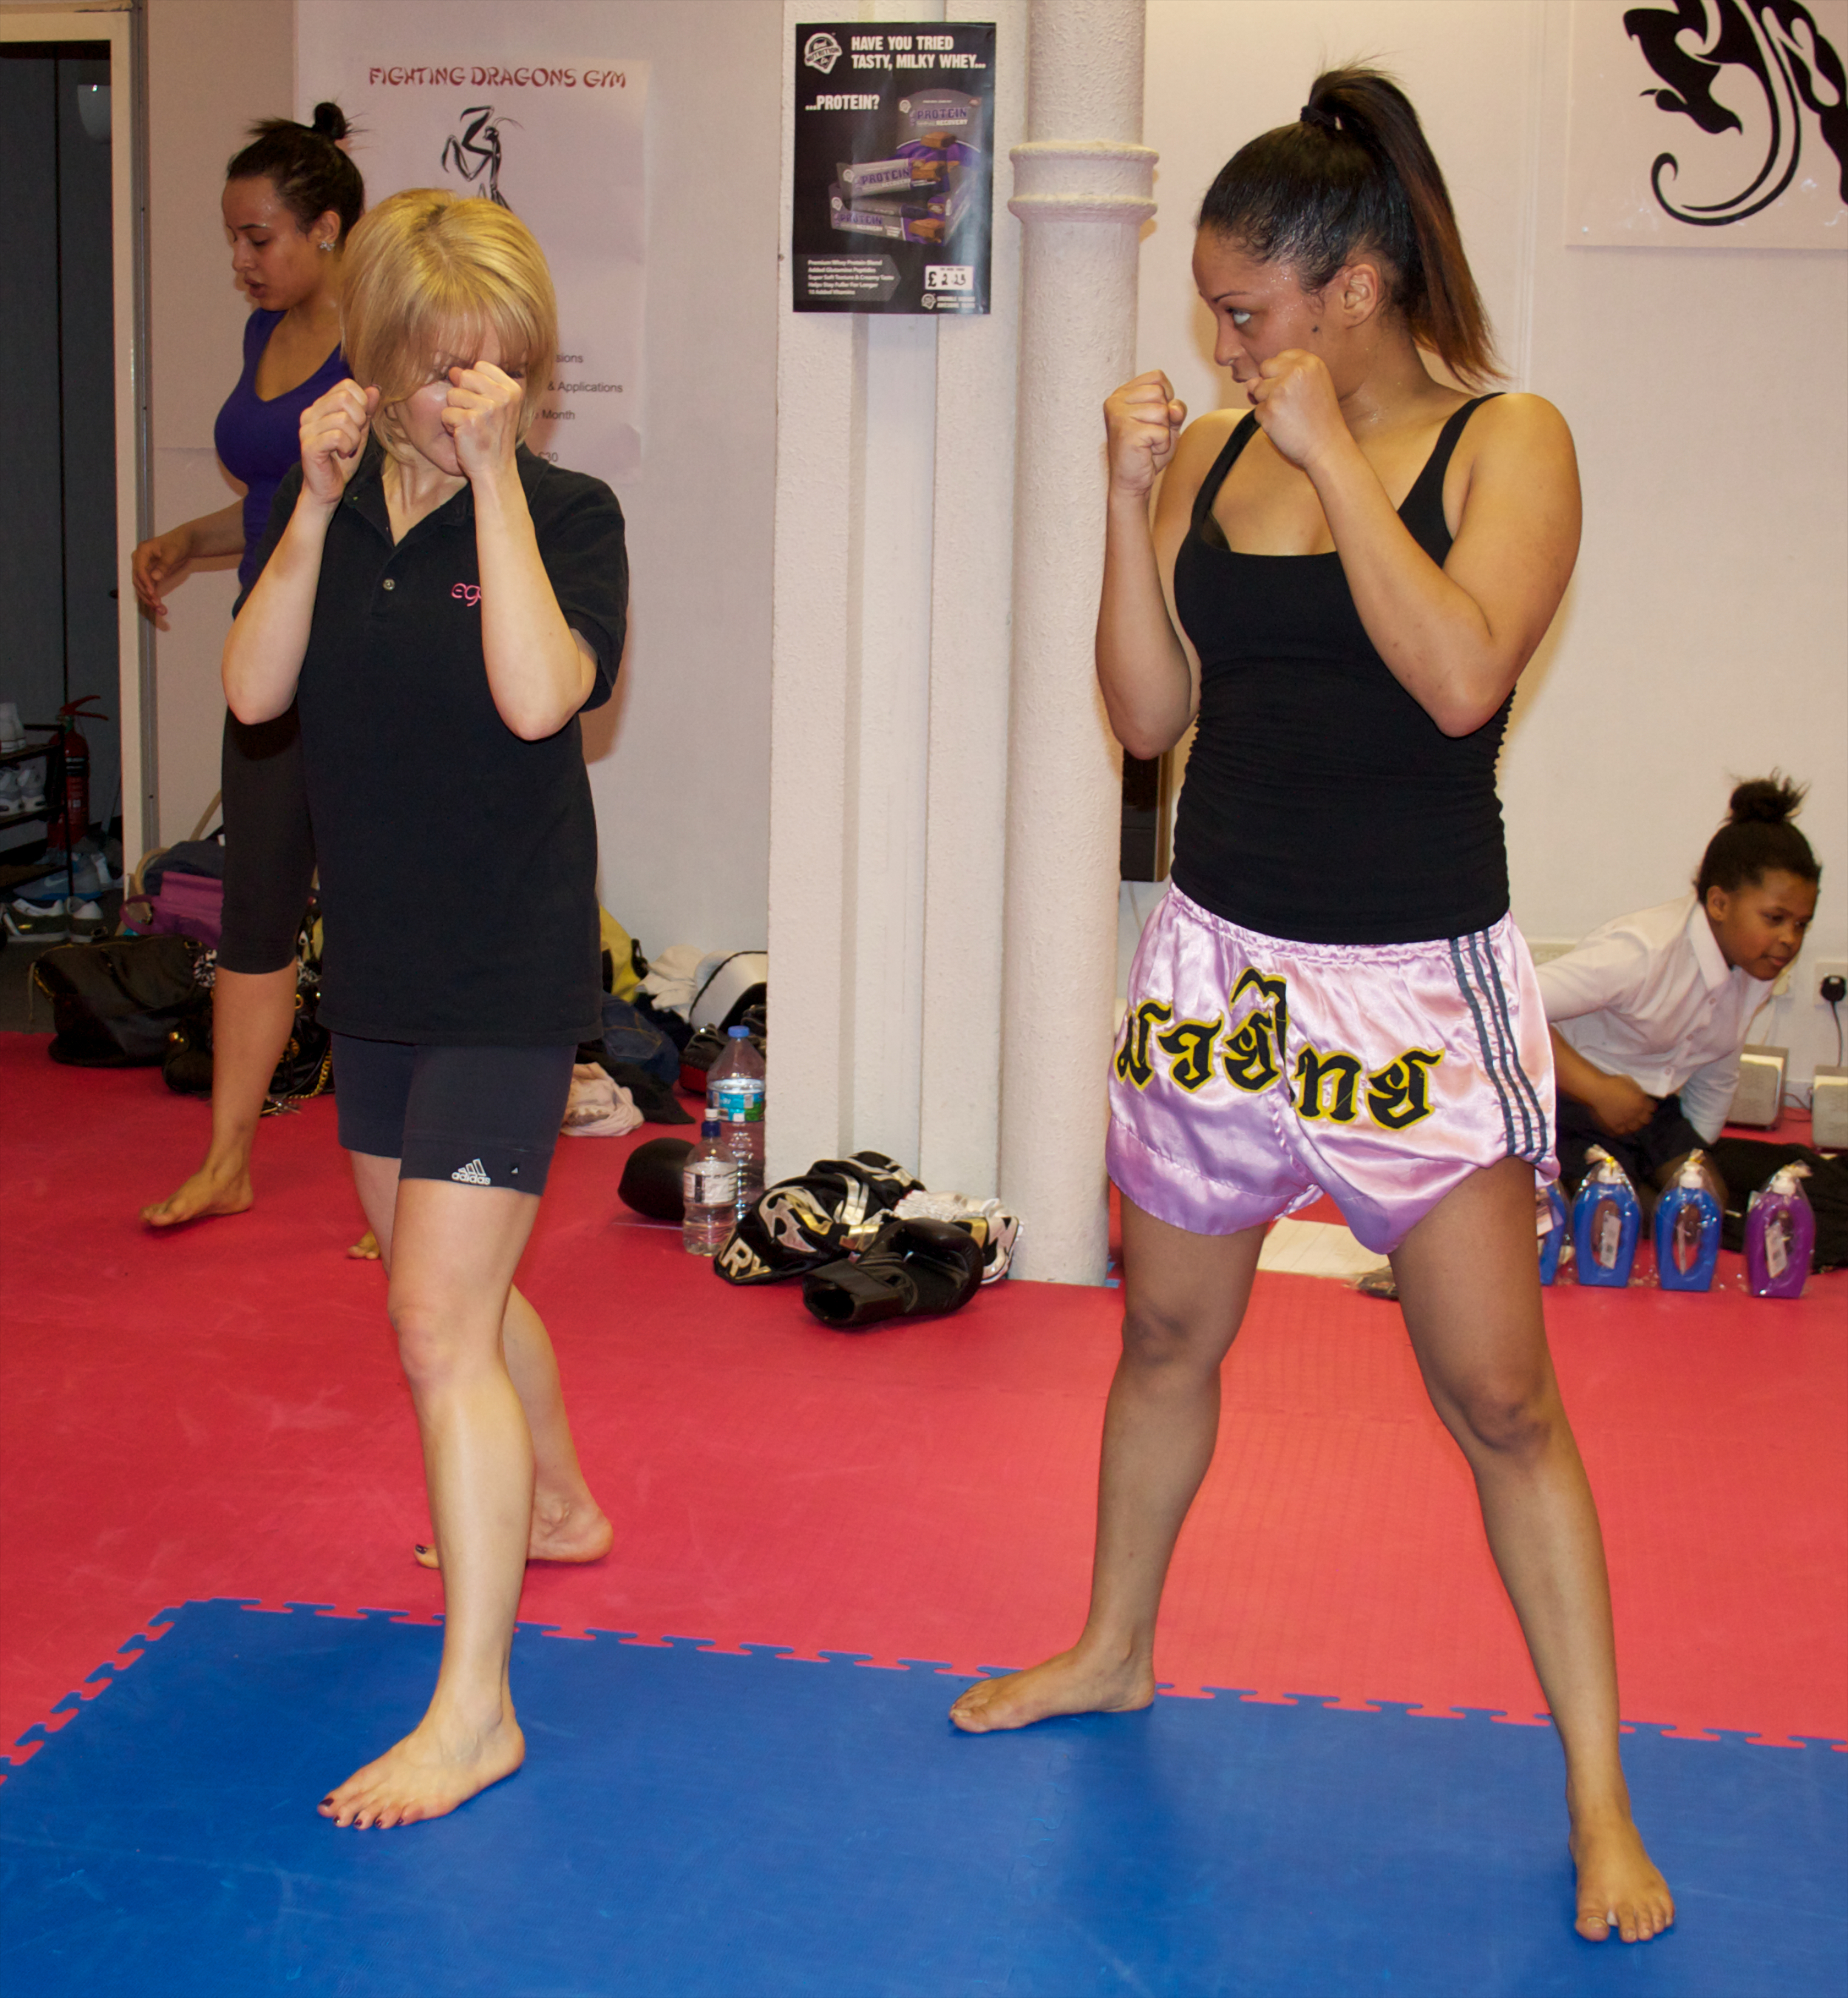 Mum and sis enjoying one of my group Muay Thai sessions